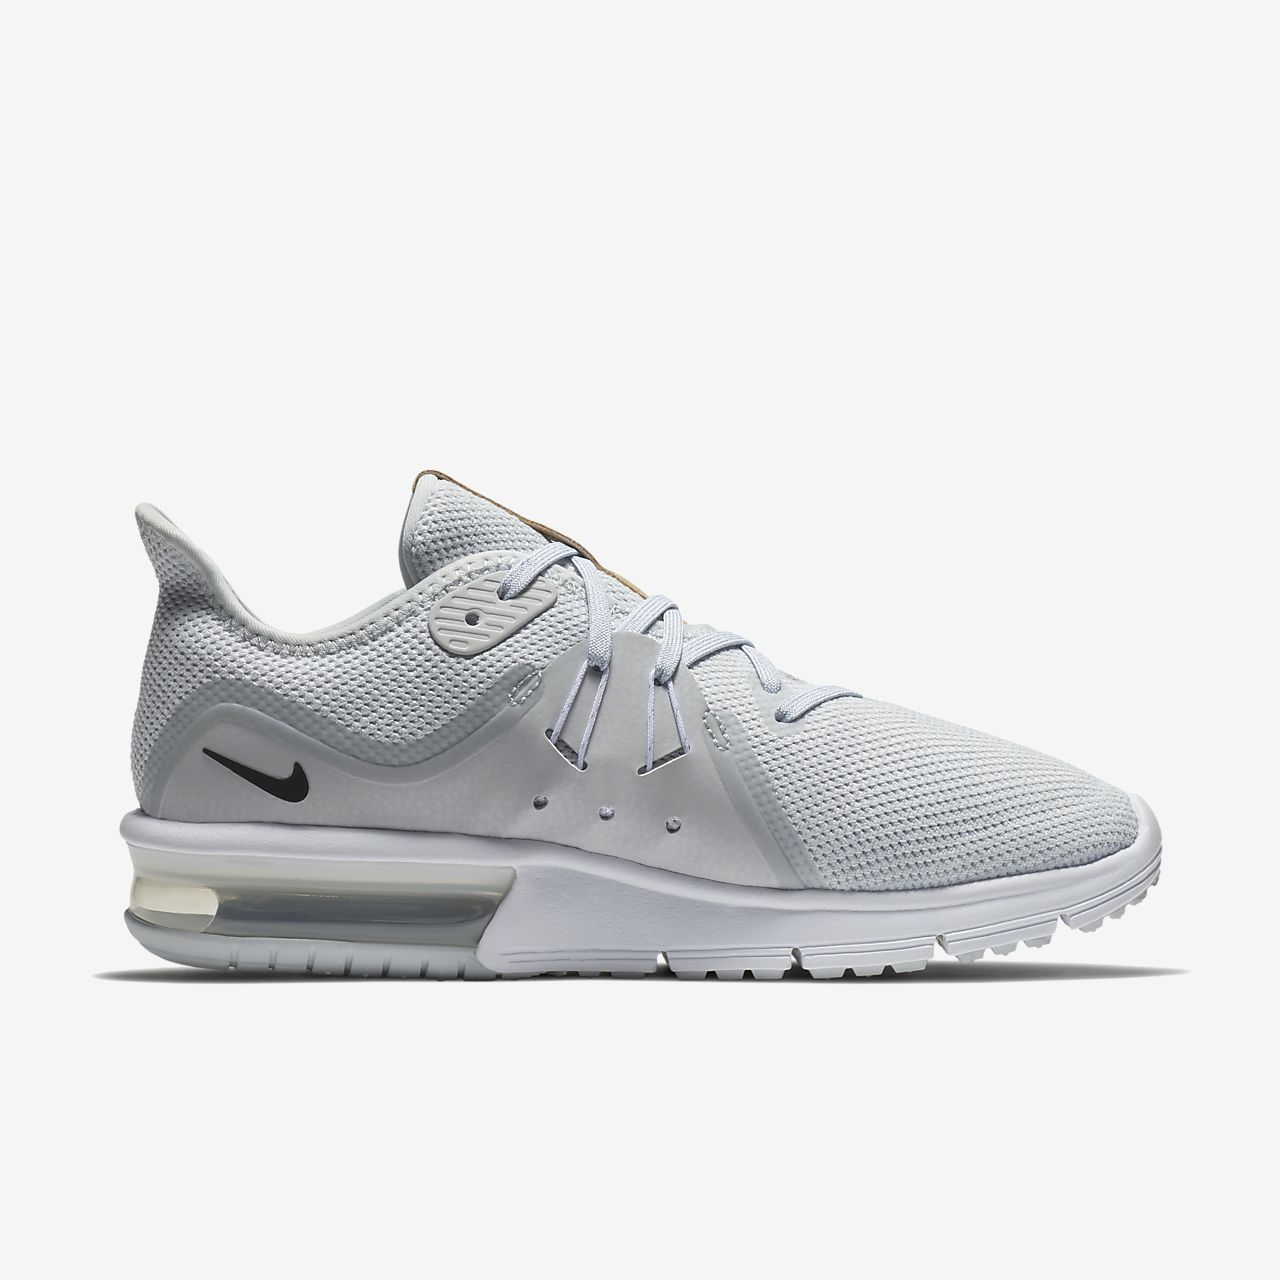 new concept 47e91 a4a0a Nike Air Max Sequent 3